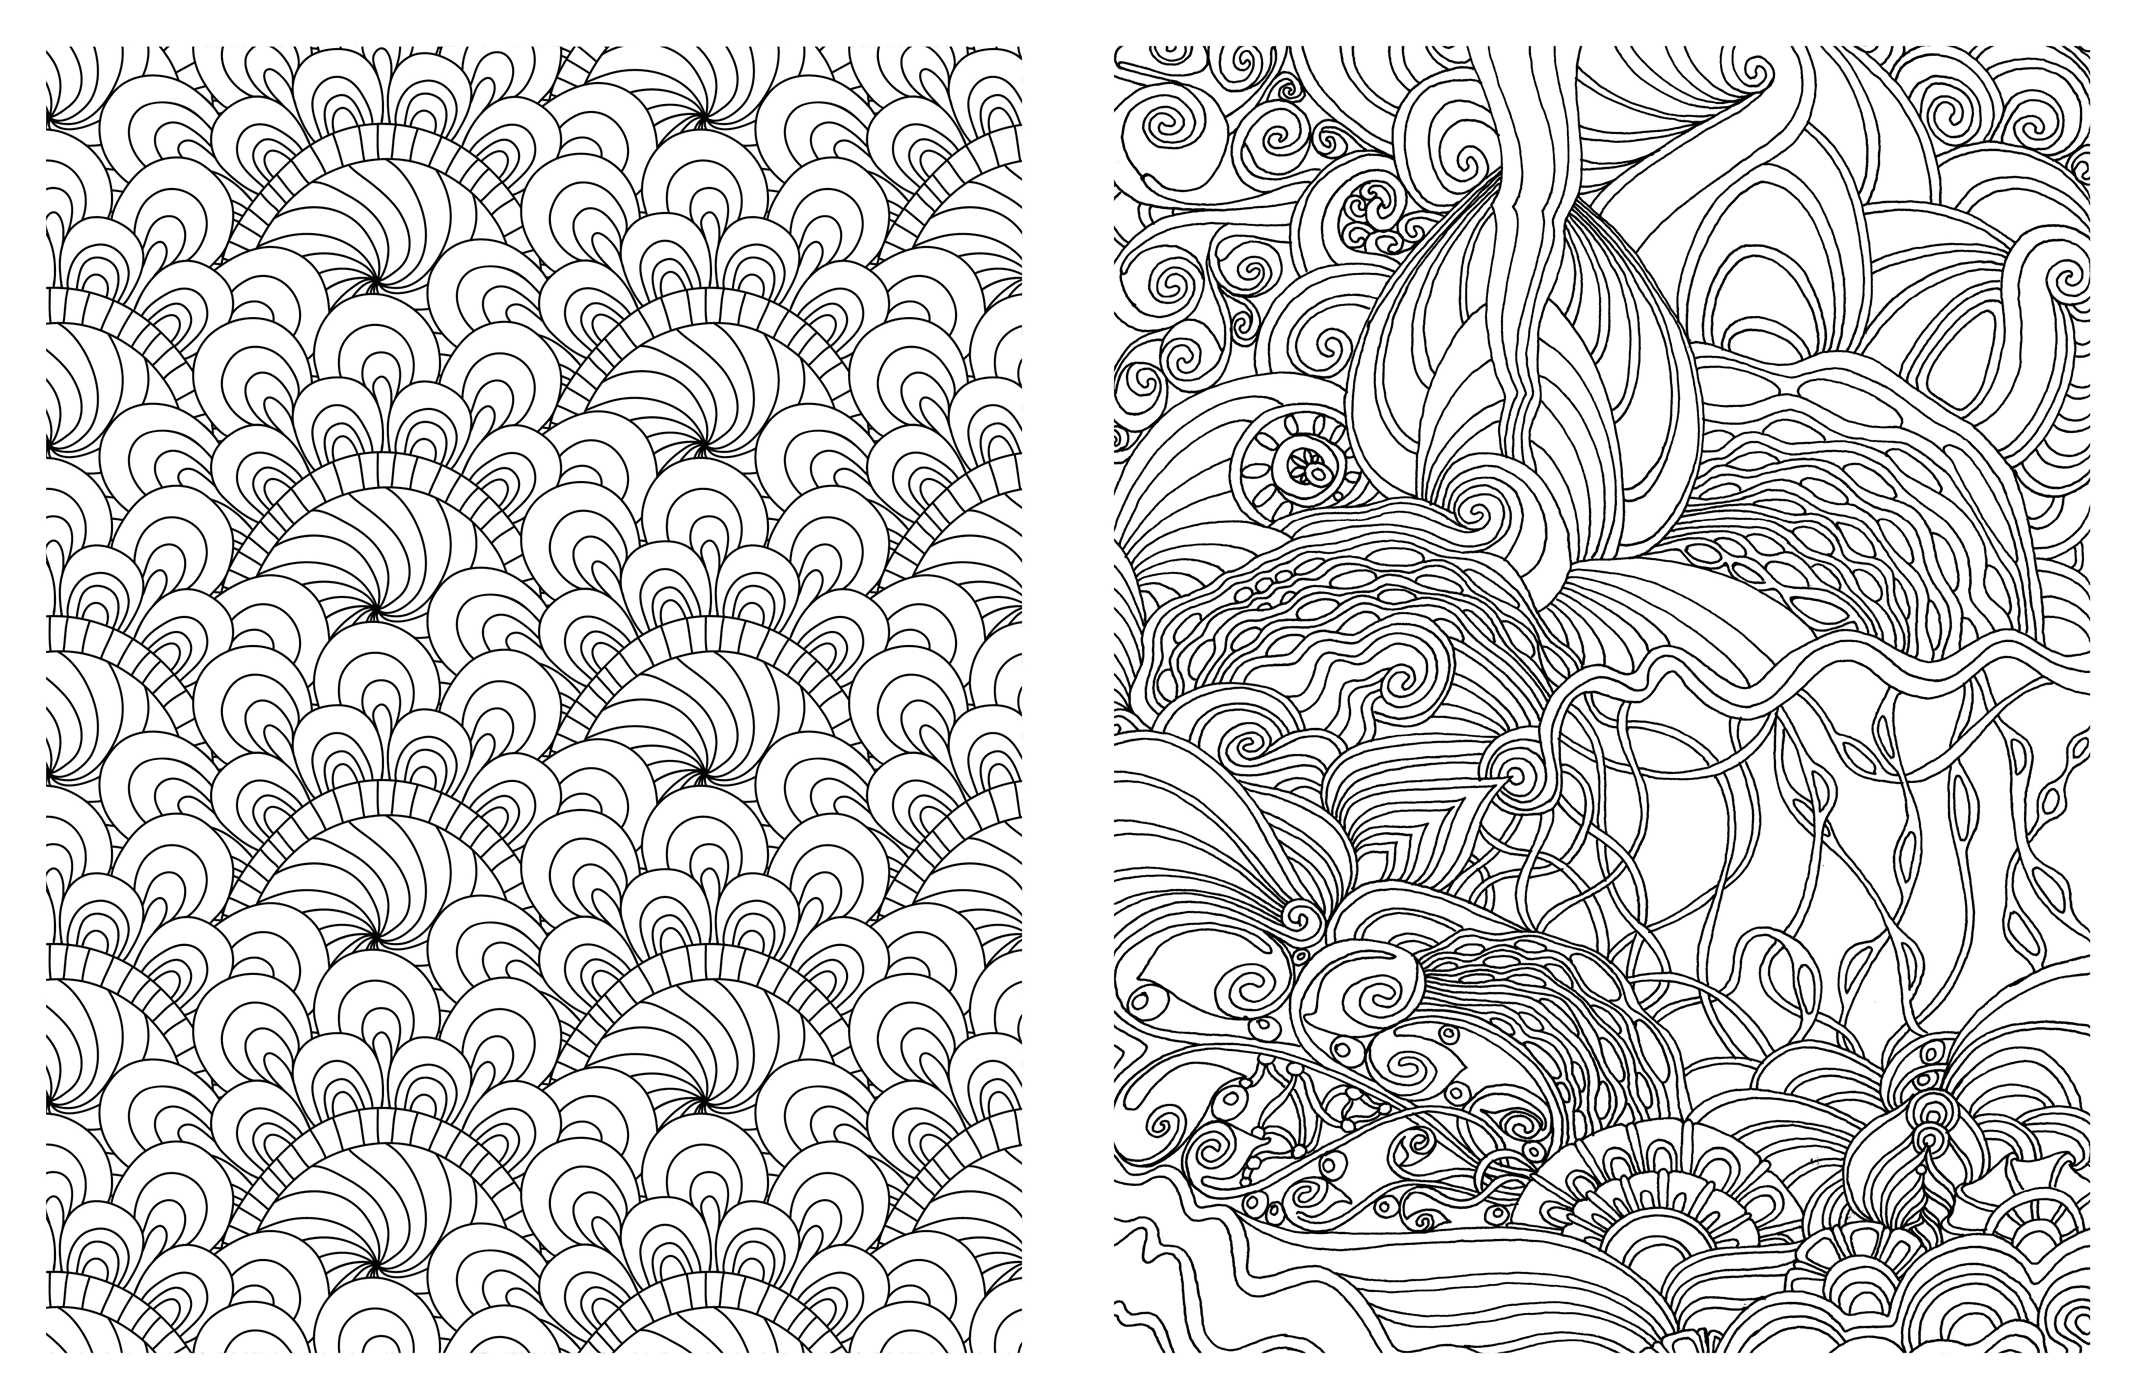 Adults colouring book pages - Amazon Com Posh Adult Coloring Book Soothing Designs For Fun Relaxation Posh Coloring Books 0050837348899 Andrews Mcmeel Publishing Books